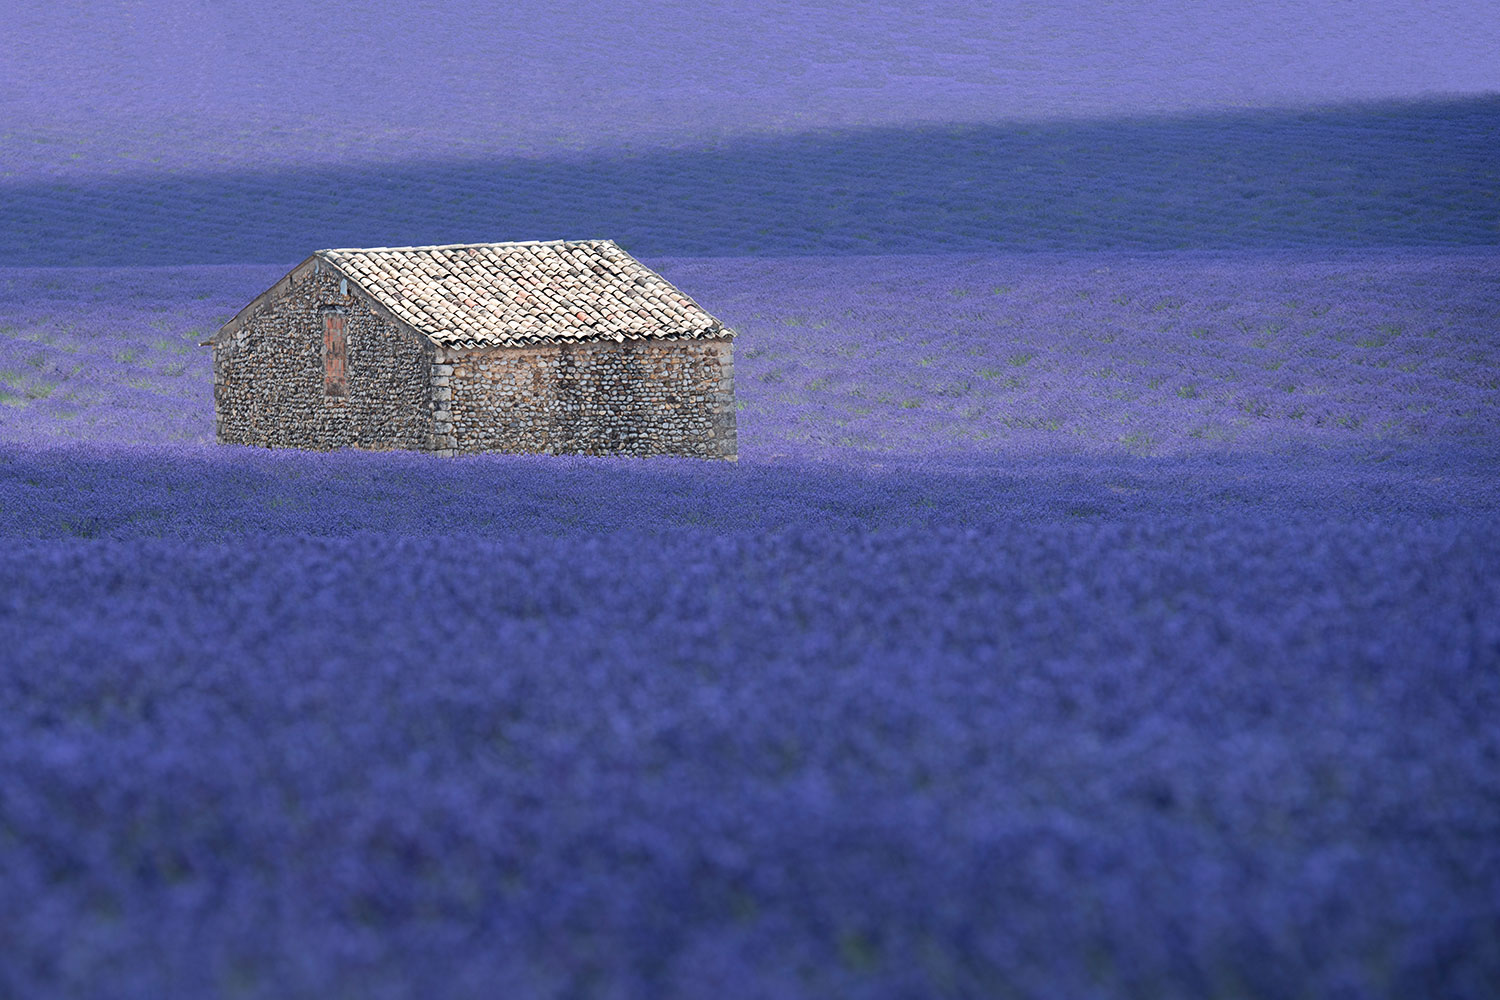 The House in the Purple...